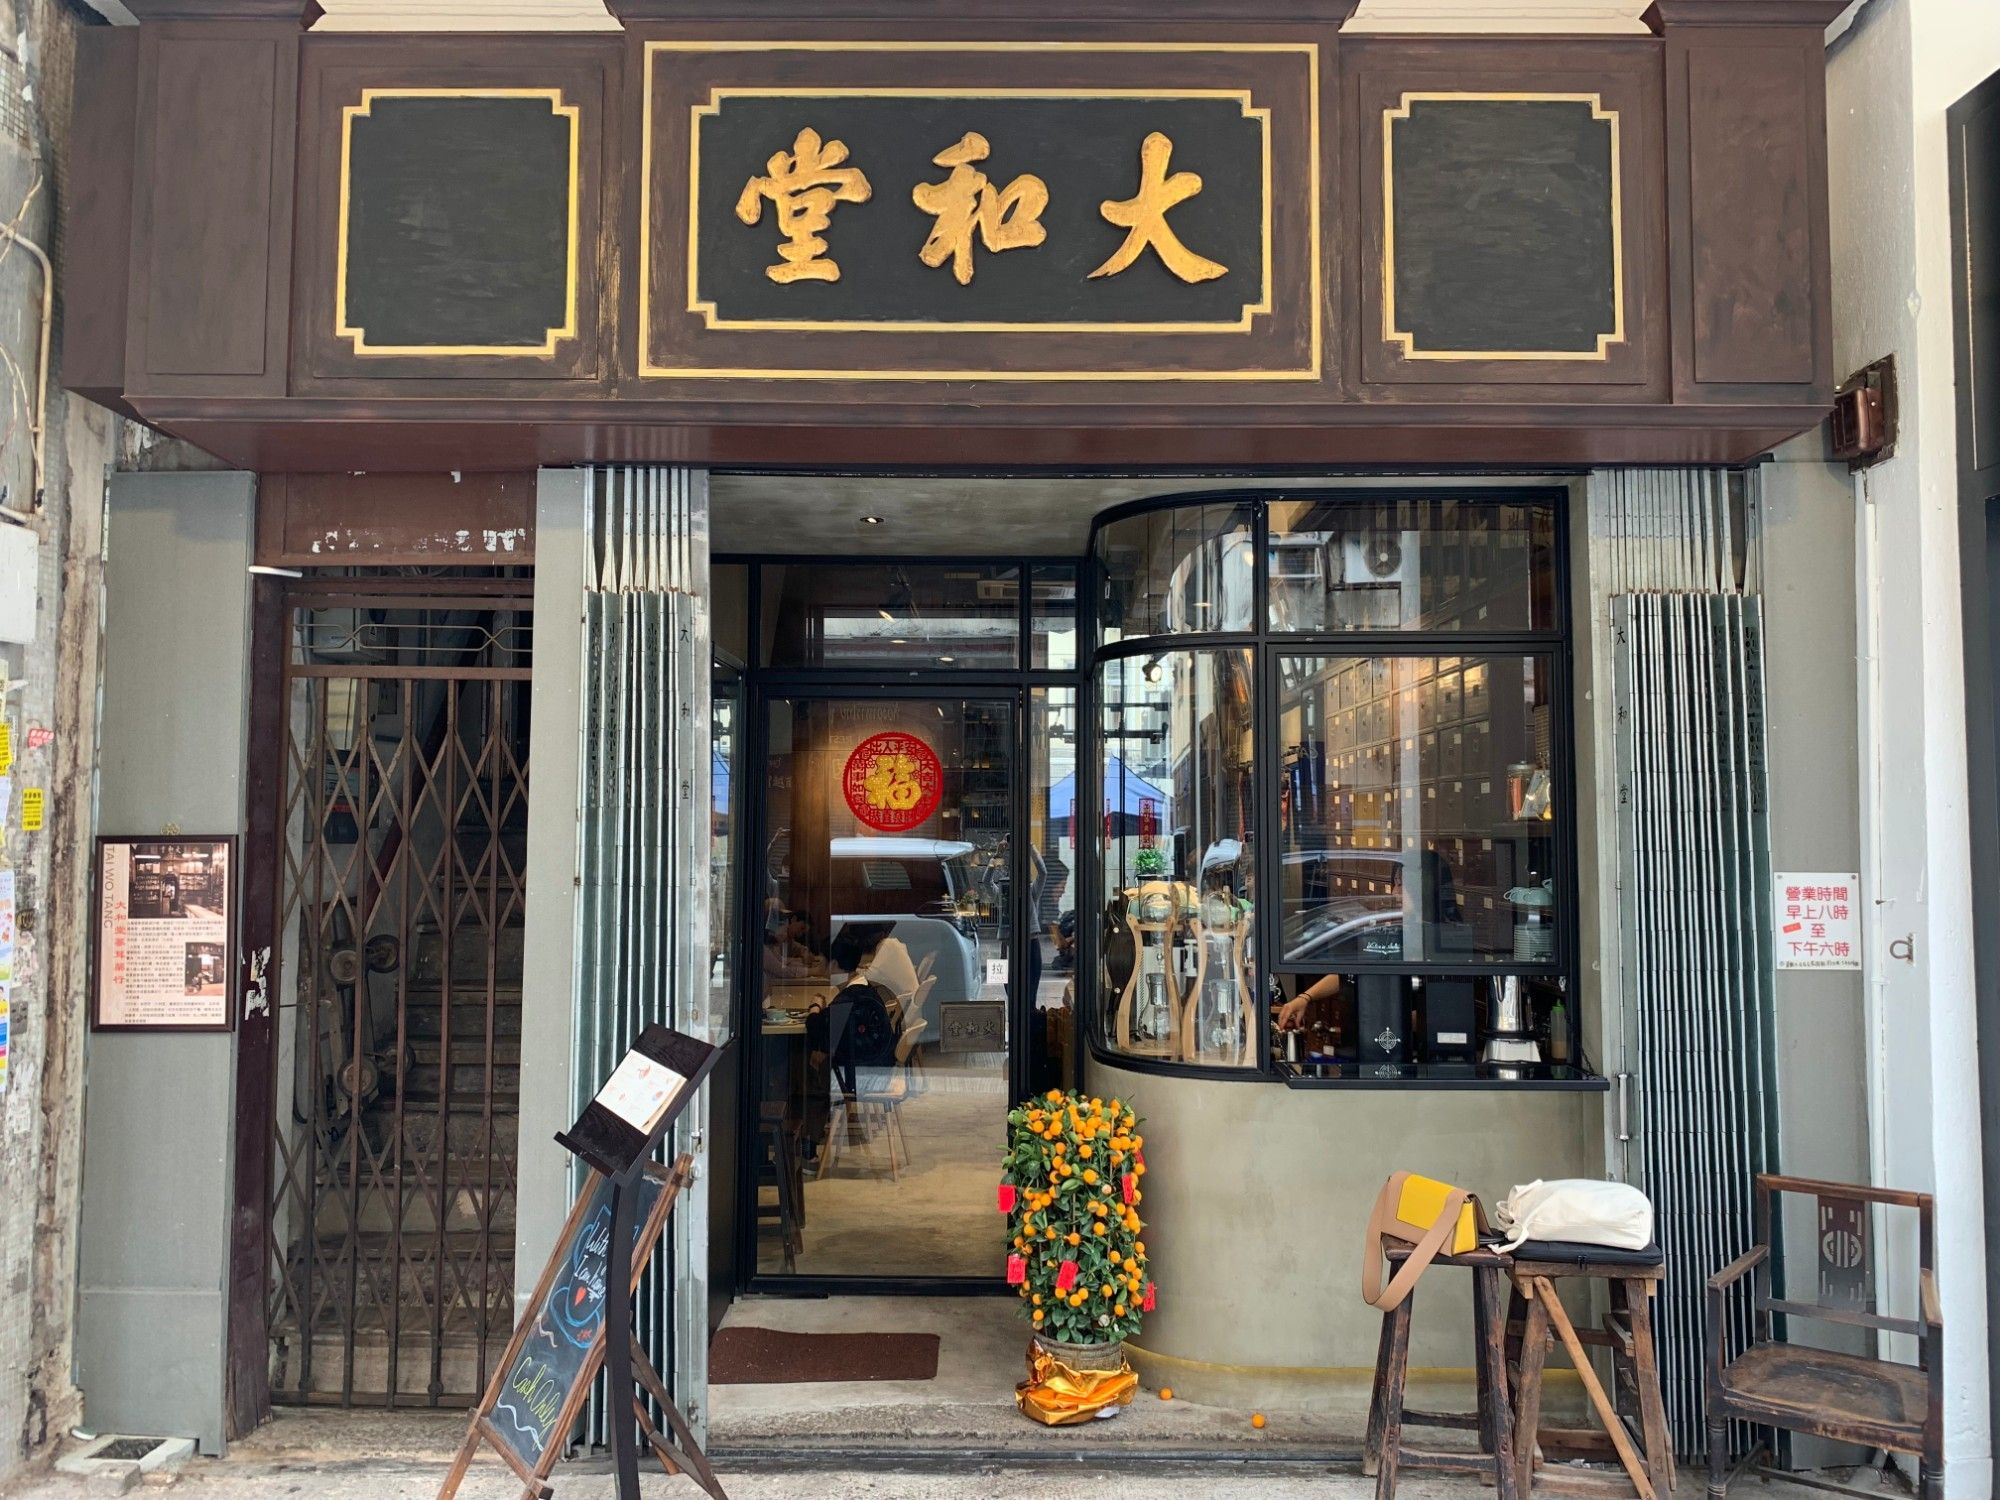 A traditional Chinese medicine shop has Hong Kong's